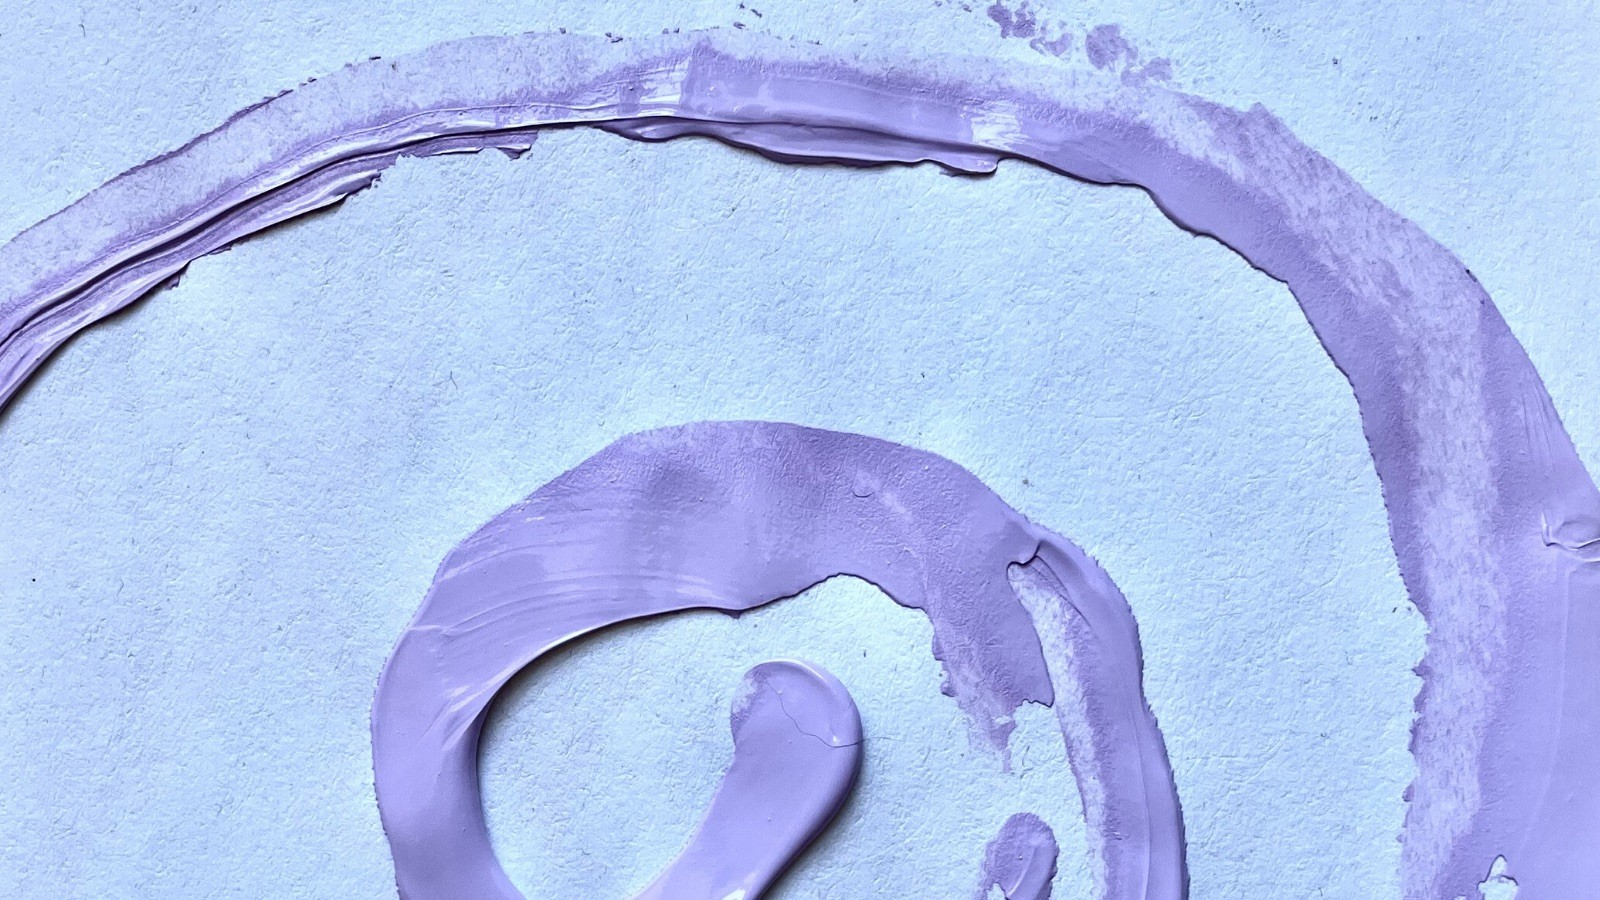 This is an image with blue undertones of a partially obscured swirl of pink paint on a textured white background.